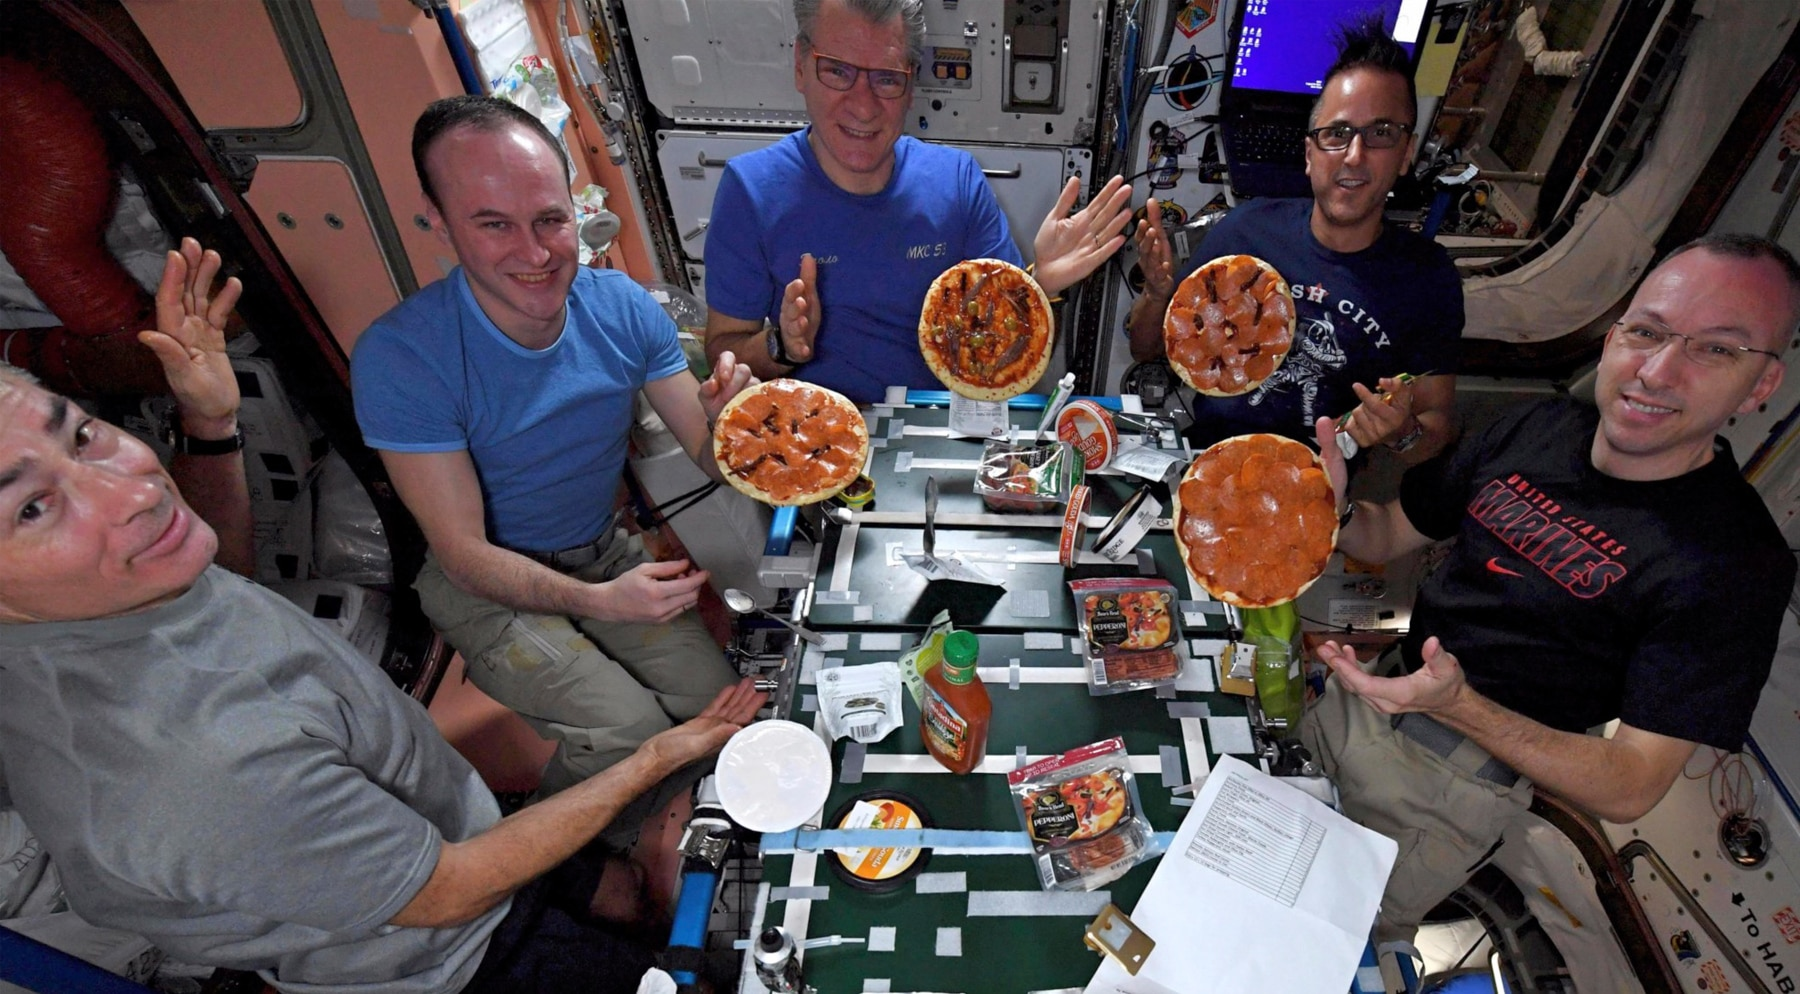 Astronauts showing pizzas floating in air (© AP Images)